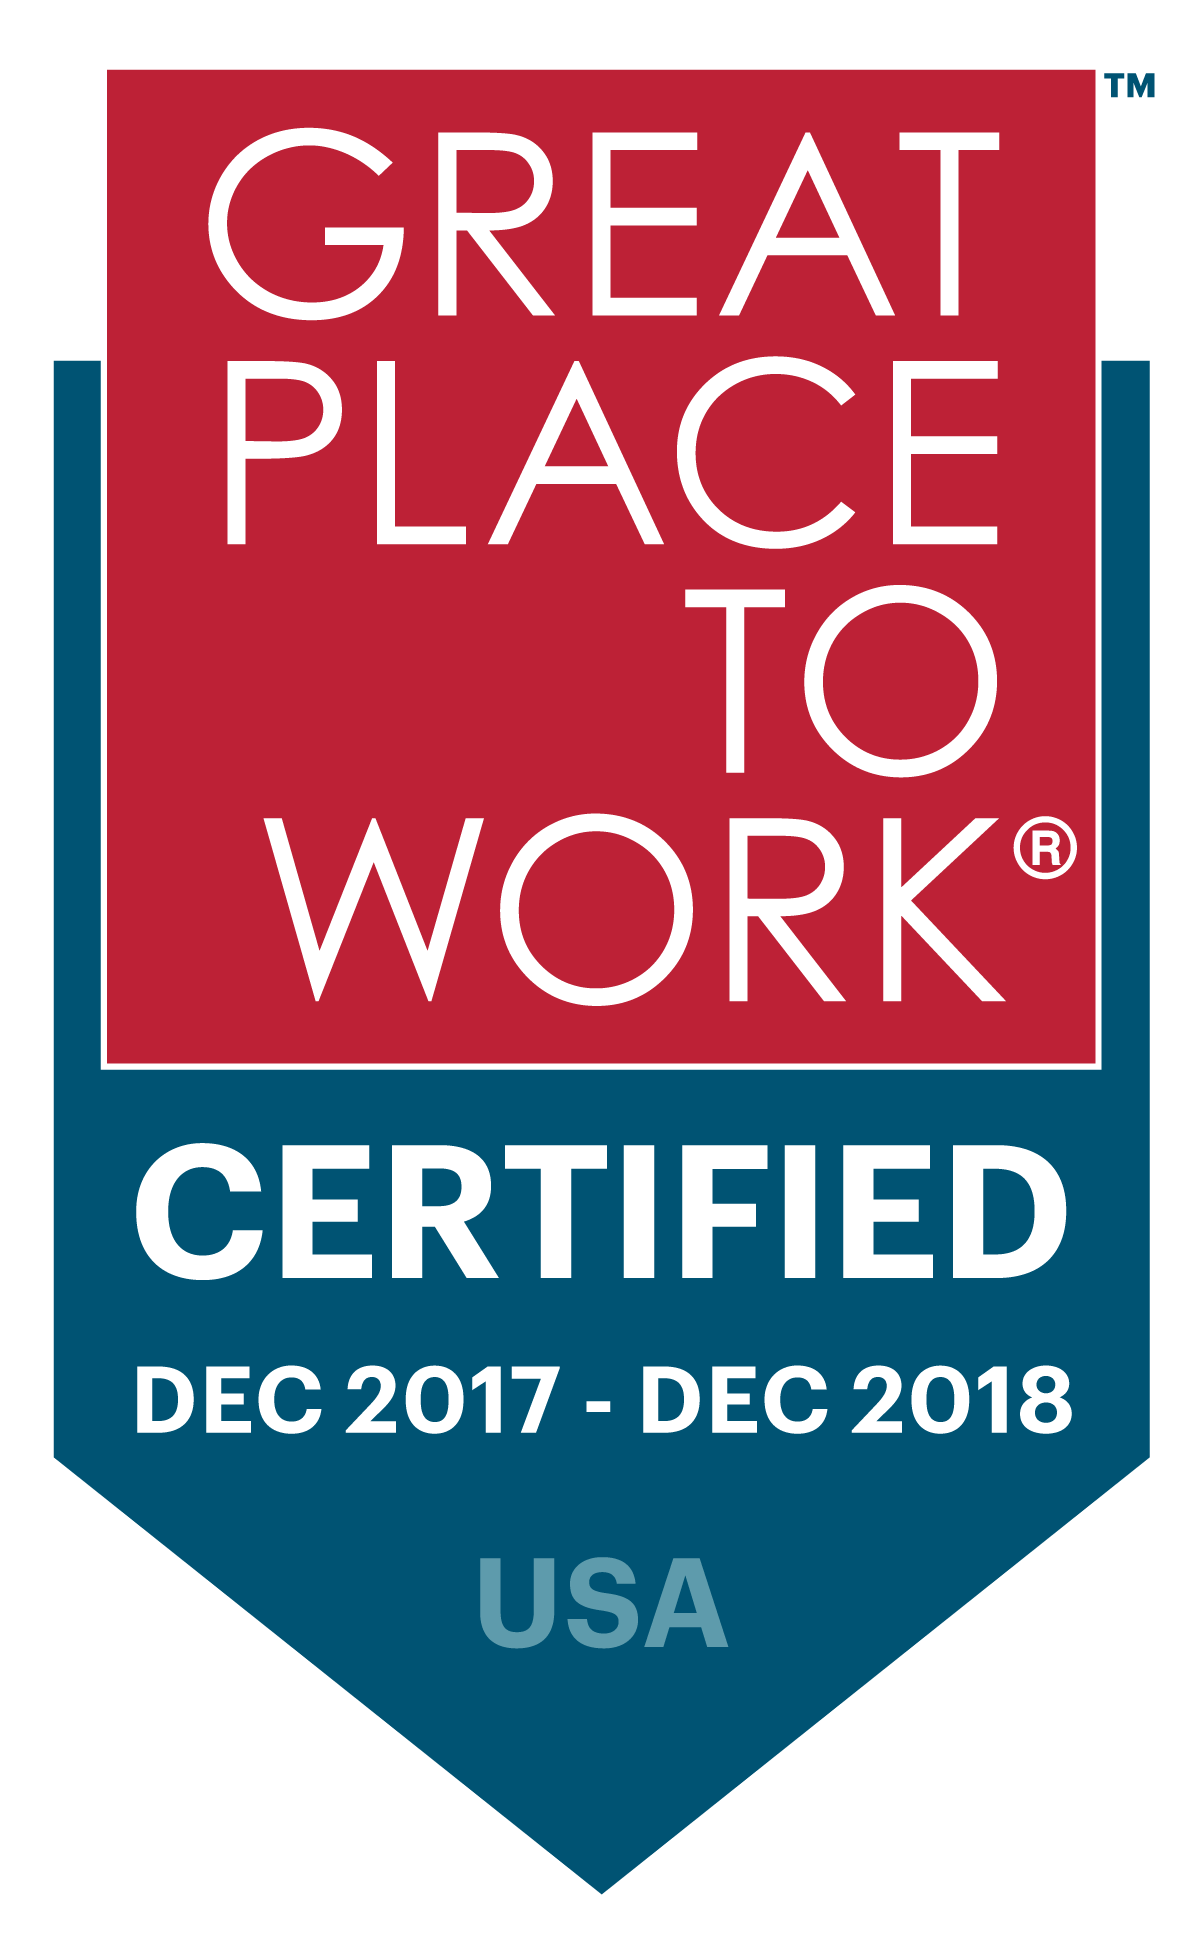 Zurixx has received recognition as a 2017 Great Place to Work. This is the company's third year receiving this award based off employee feedback.